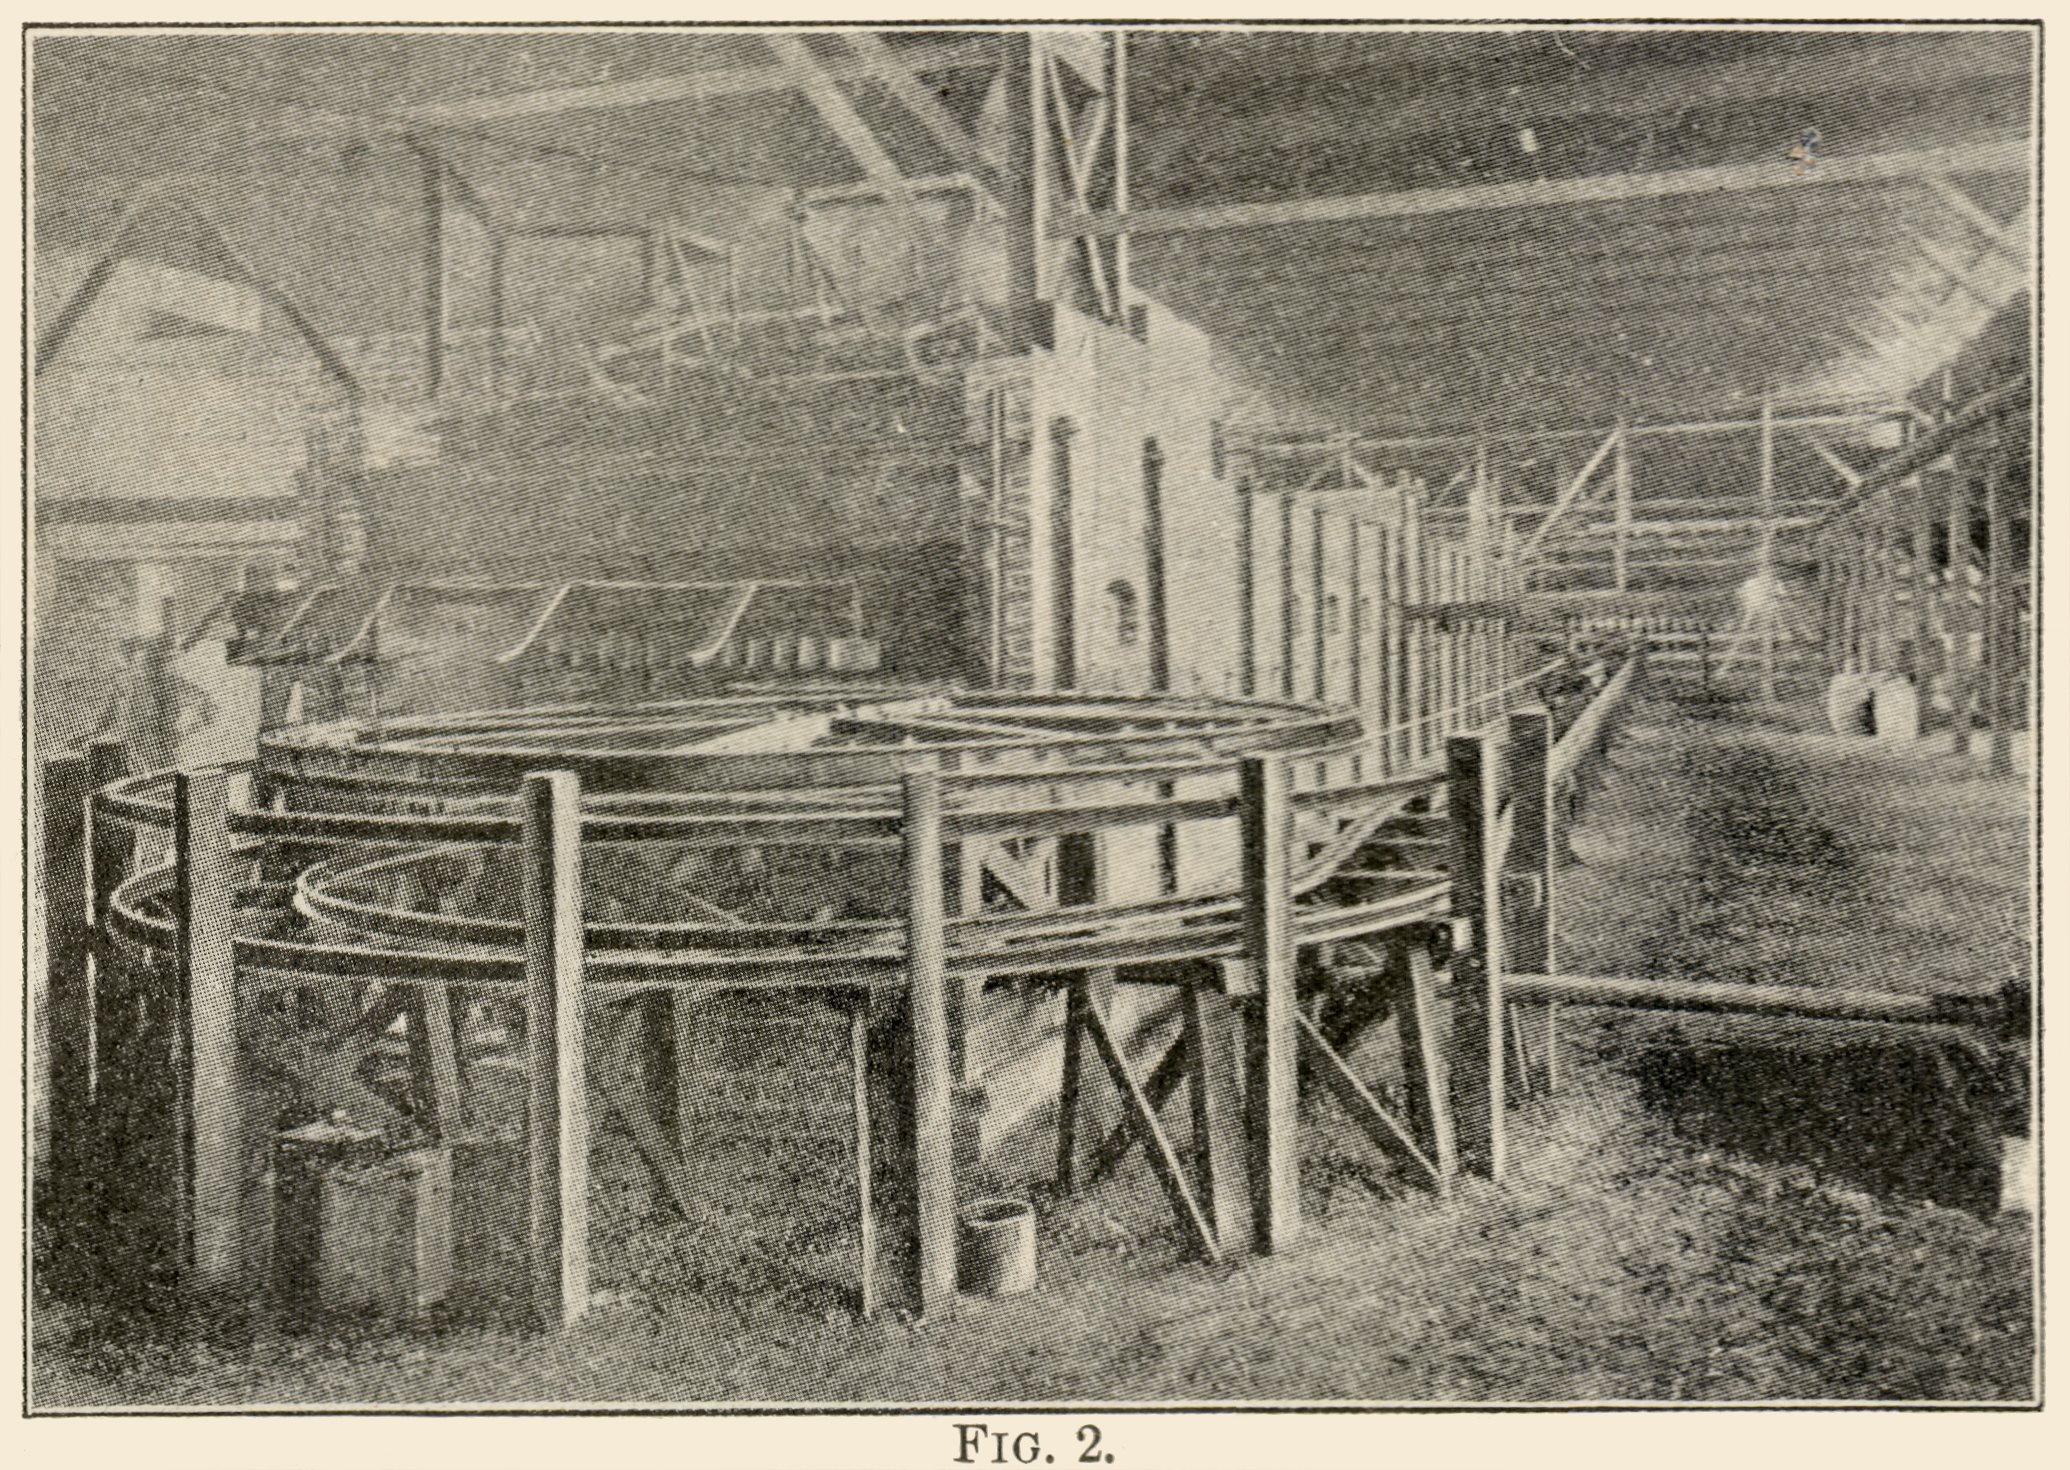 This sadly quite bad view shows an Interior View from the Arequa Mill. Appearing in an August 1899 issue this must been photographed before that time and being said to have been erected around 1896/1897 the timespan is not that large. The Article said nothing directly about this view, but I get the feel that this view is showing one of the ends of the so-called Rabble Machine. The wheel looks like the one drawn in Figure 4 in the article this is from, about the Cyanide Mill part of the Arequa Mill.